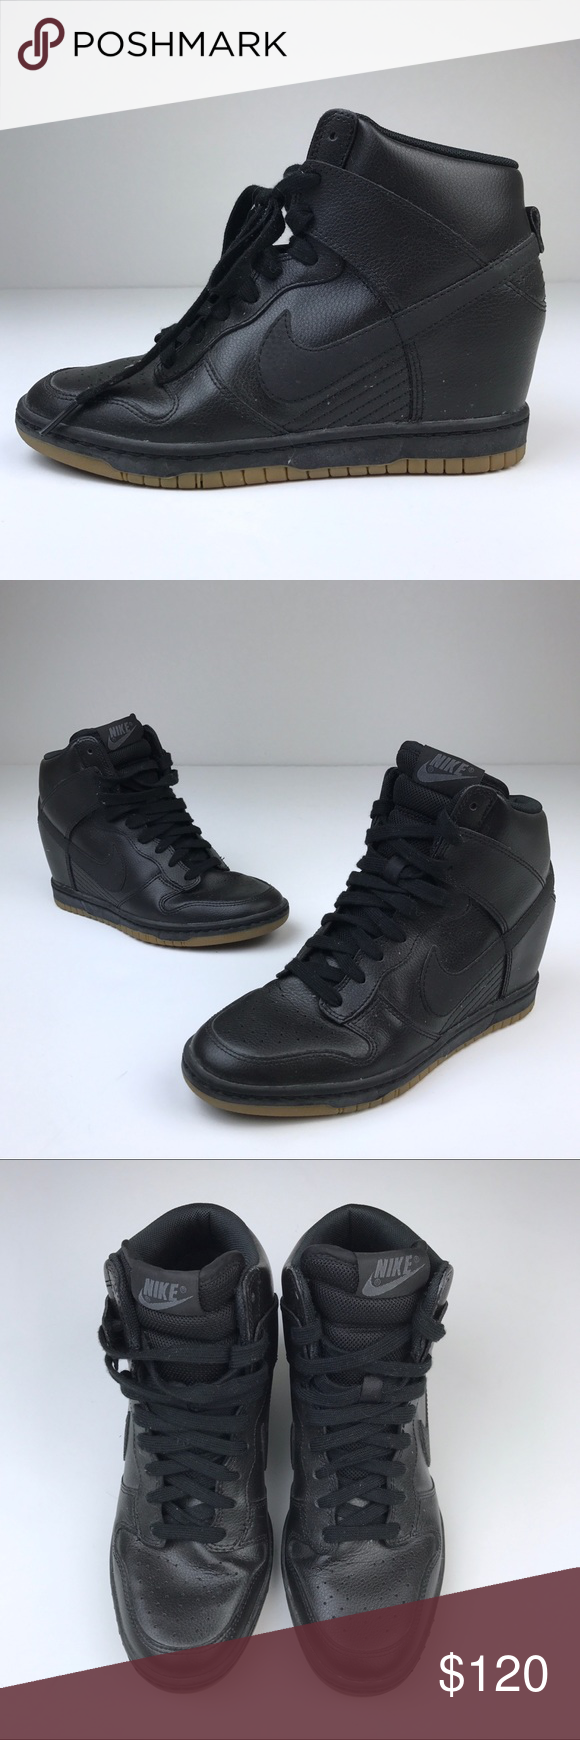 a278ab05d345 Nike Dunk Sky Hi Wedge Sneaker in Black Leather Nike Dunk Sky Hi Wedge  Sneaker in Black Leather with gum color soles. In great condition.